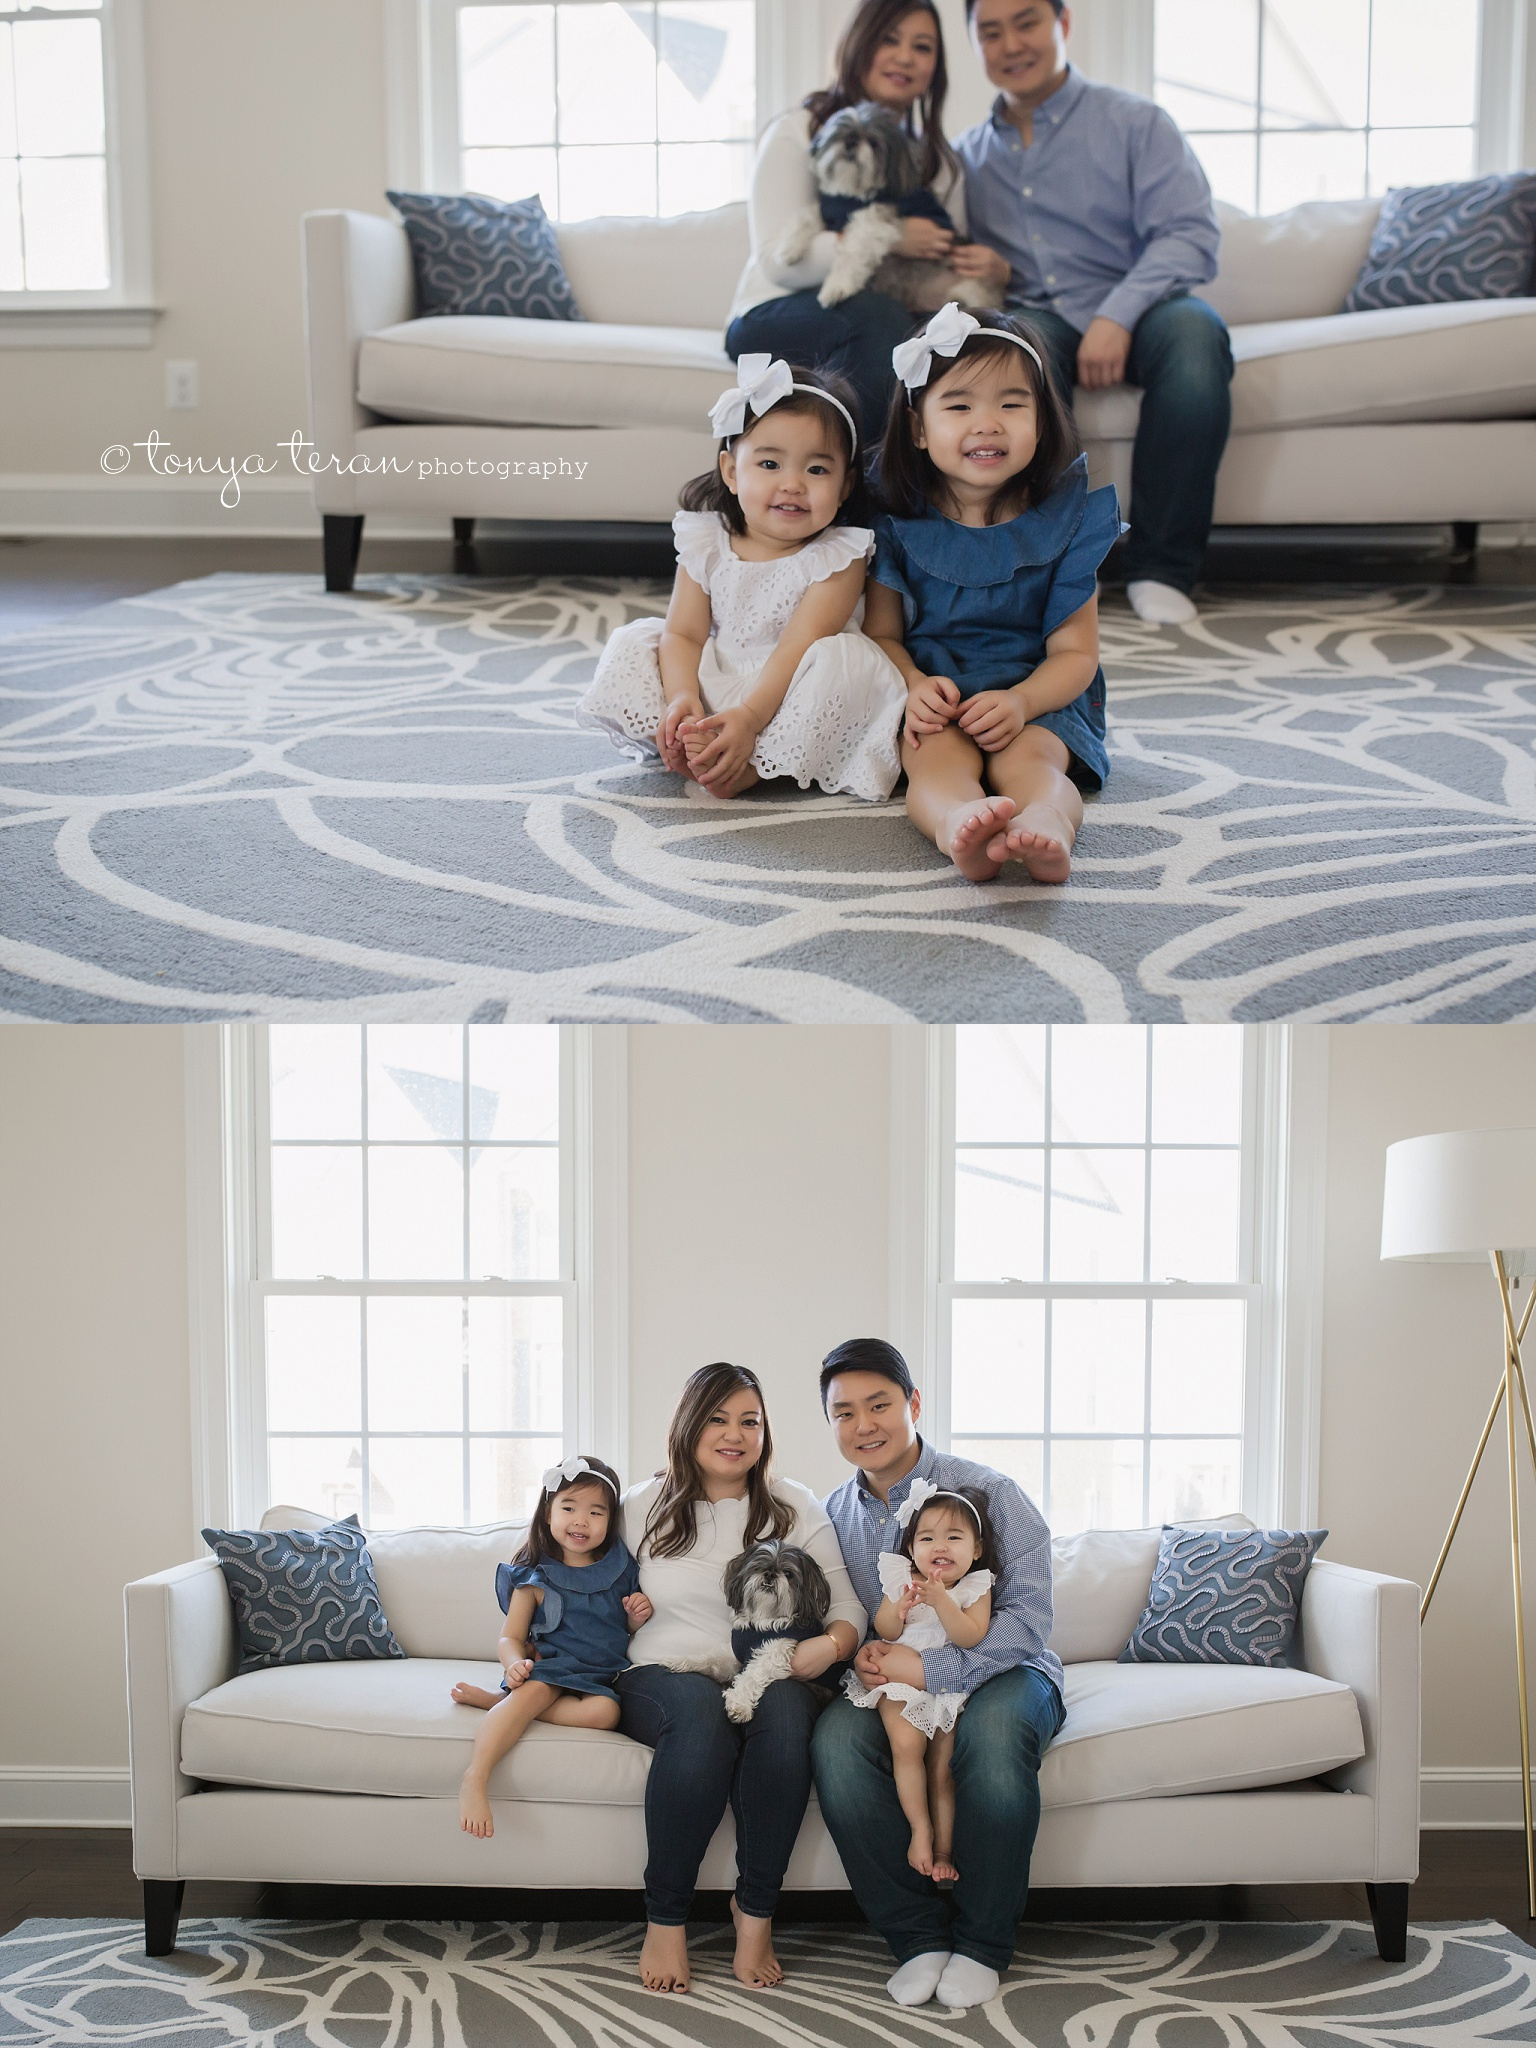 In-home Mini Family Photo Session   Tonya Teran Photography, Potomac, MD Best Newborn, Baby, and Family Photographer